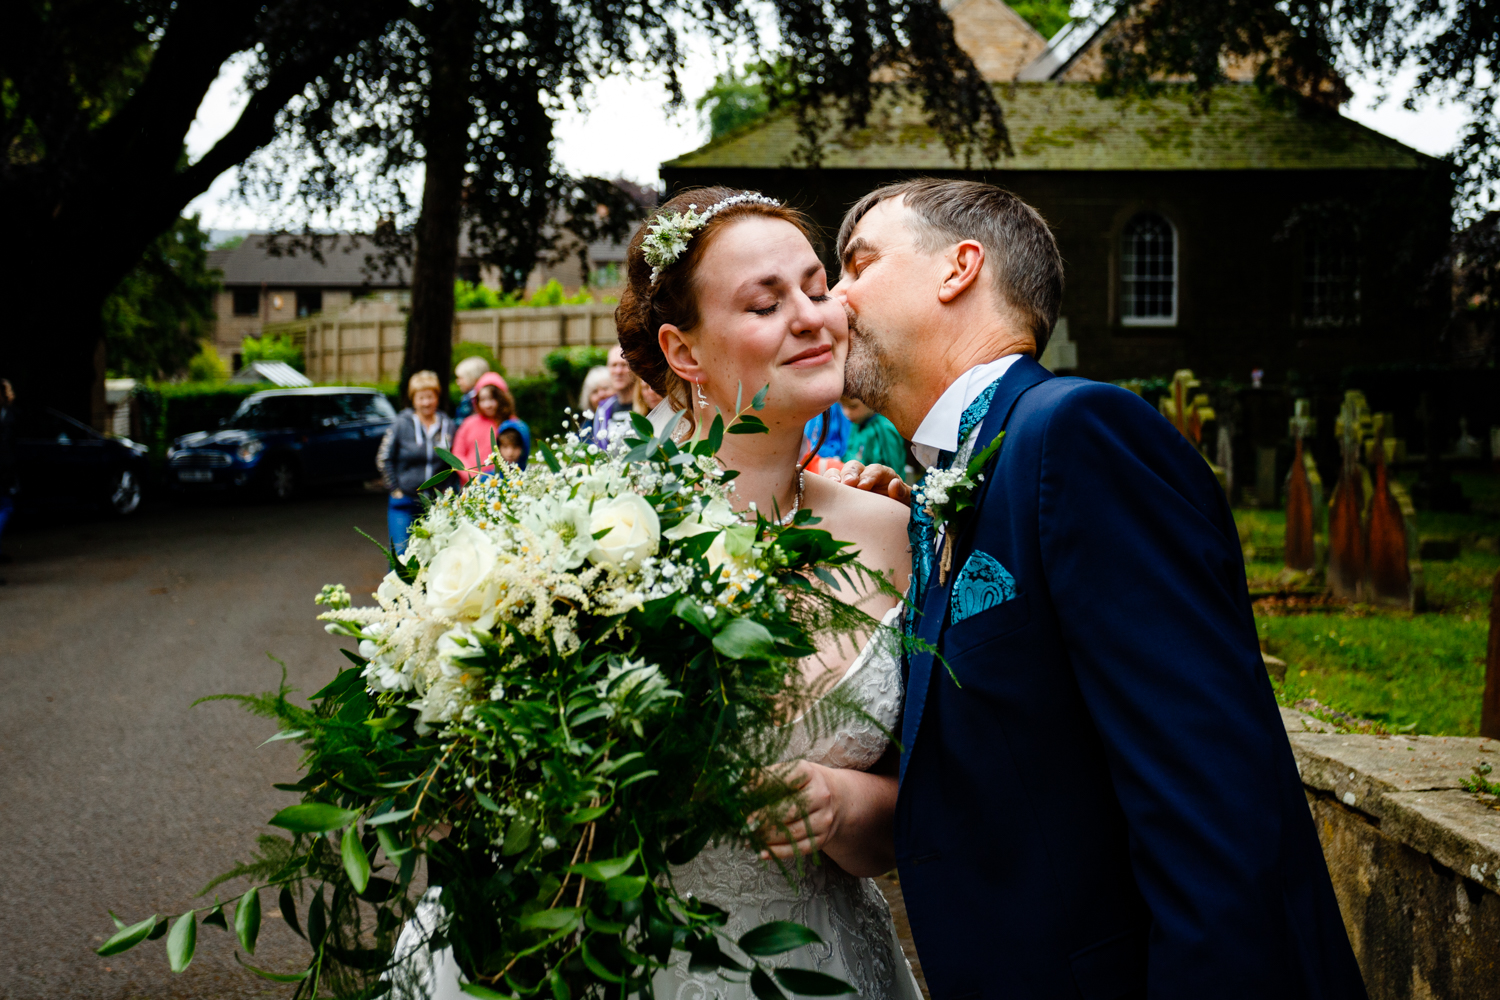 Lancashire-wedding-photographer-adele-and-alex-047.jpg